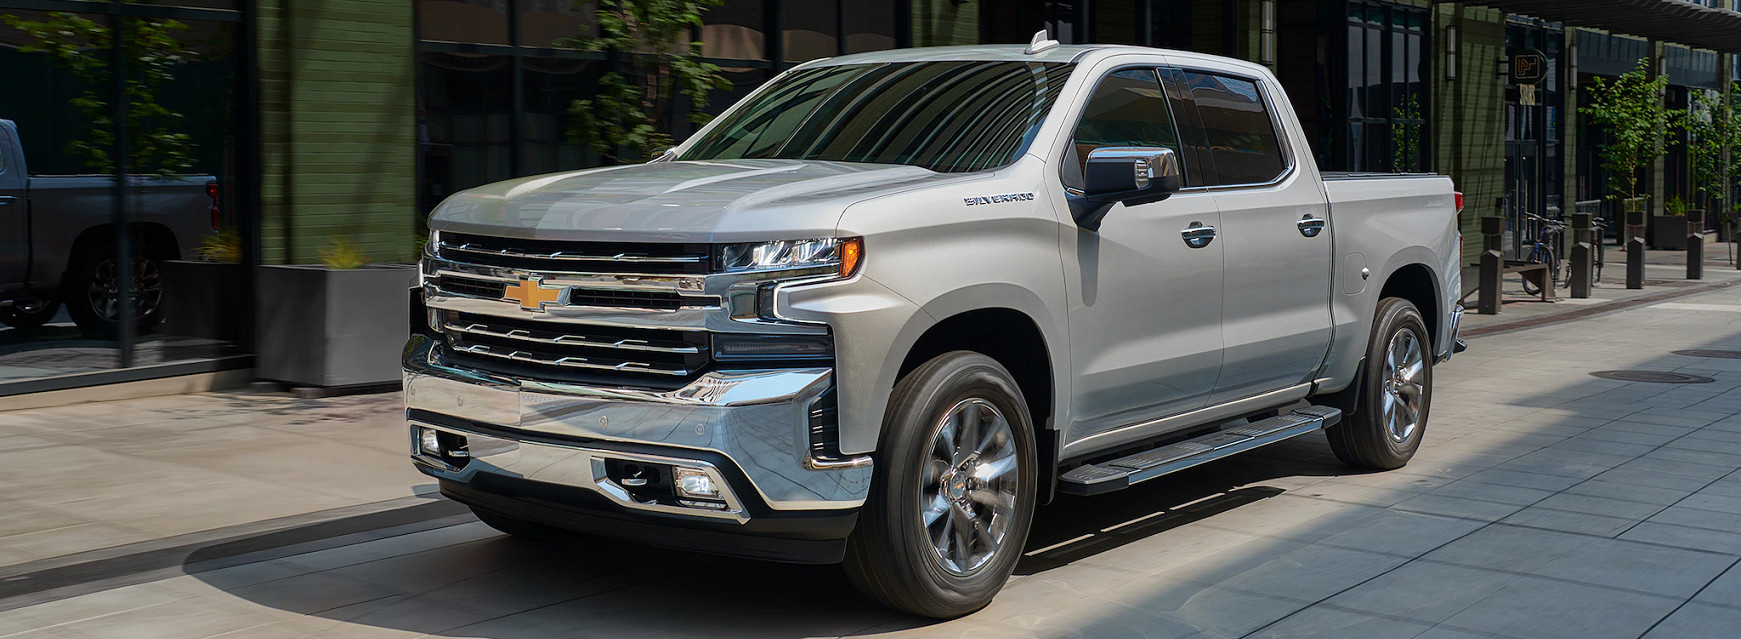 2020 Chevrolet Silverado 1500 Trim Levels Near North County, Ca 2021 Chevrolet Silverado Owners Manual, Oil Change, Price